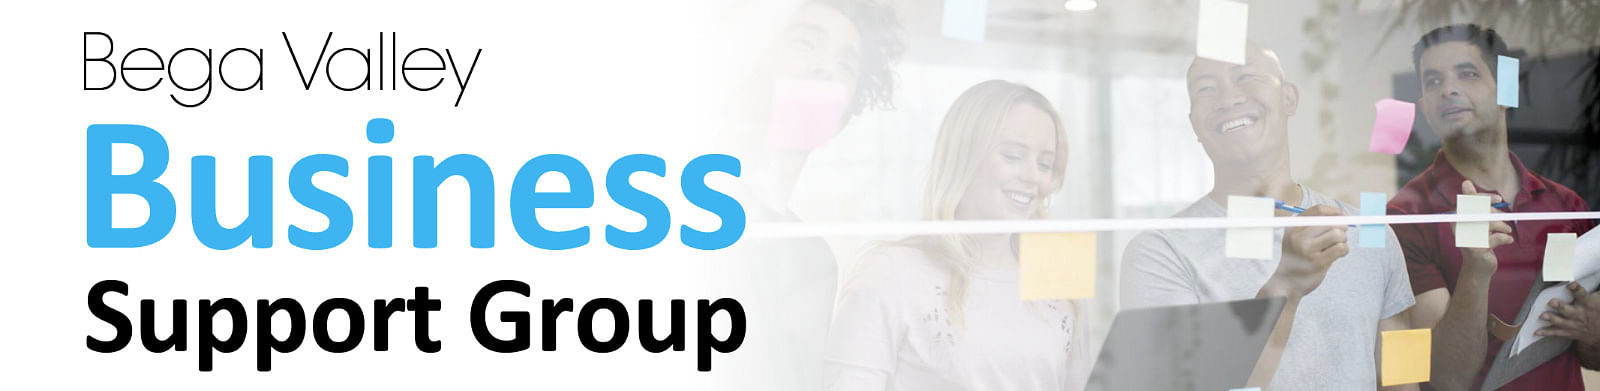 Text: Bega Valley Business Support Group.